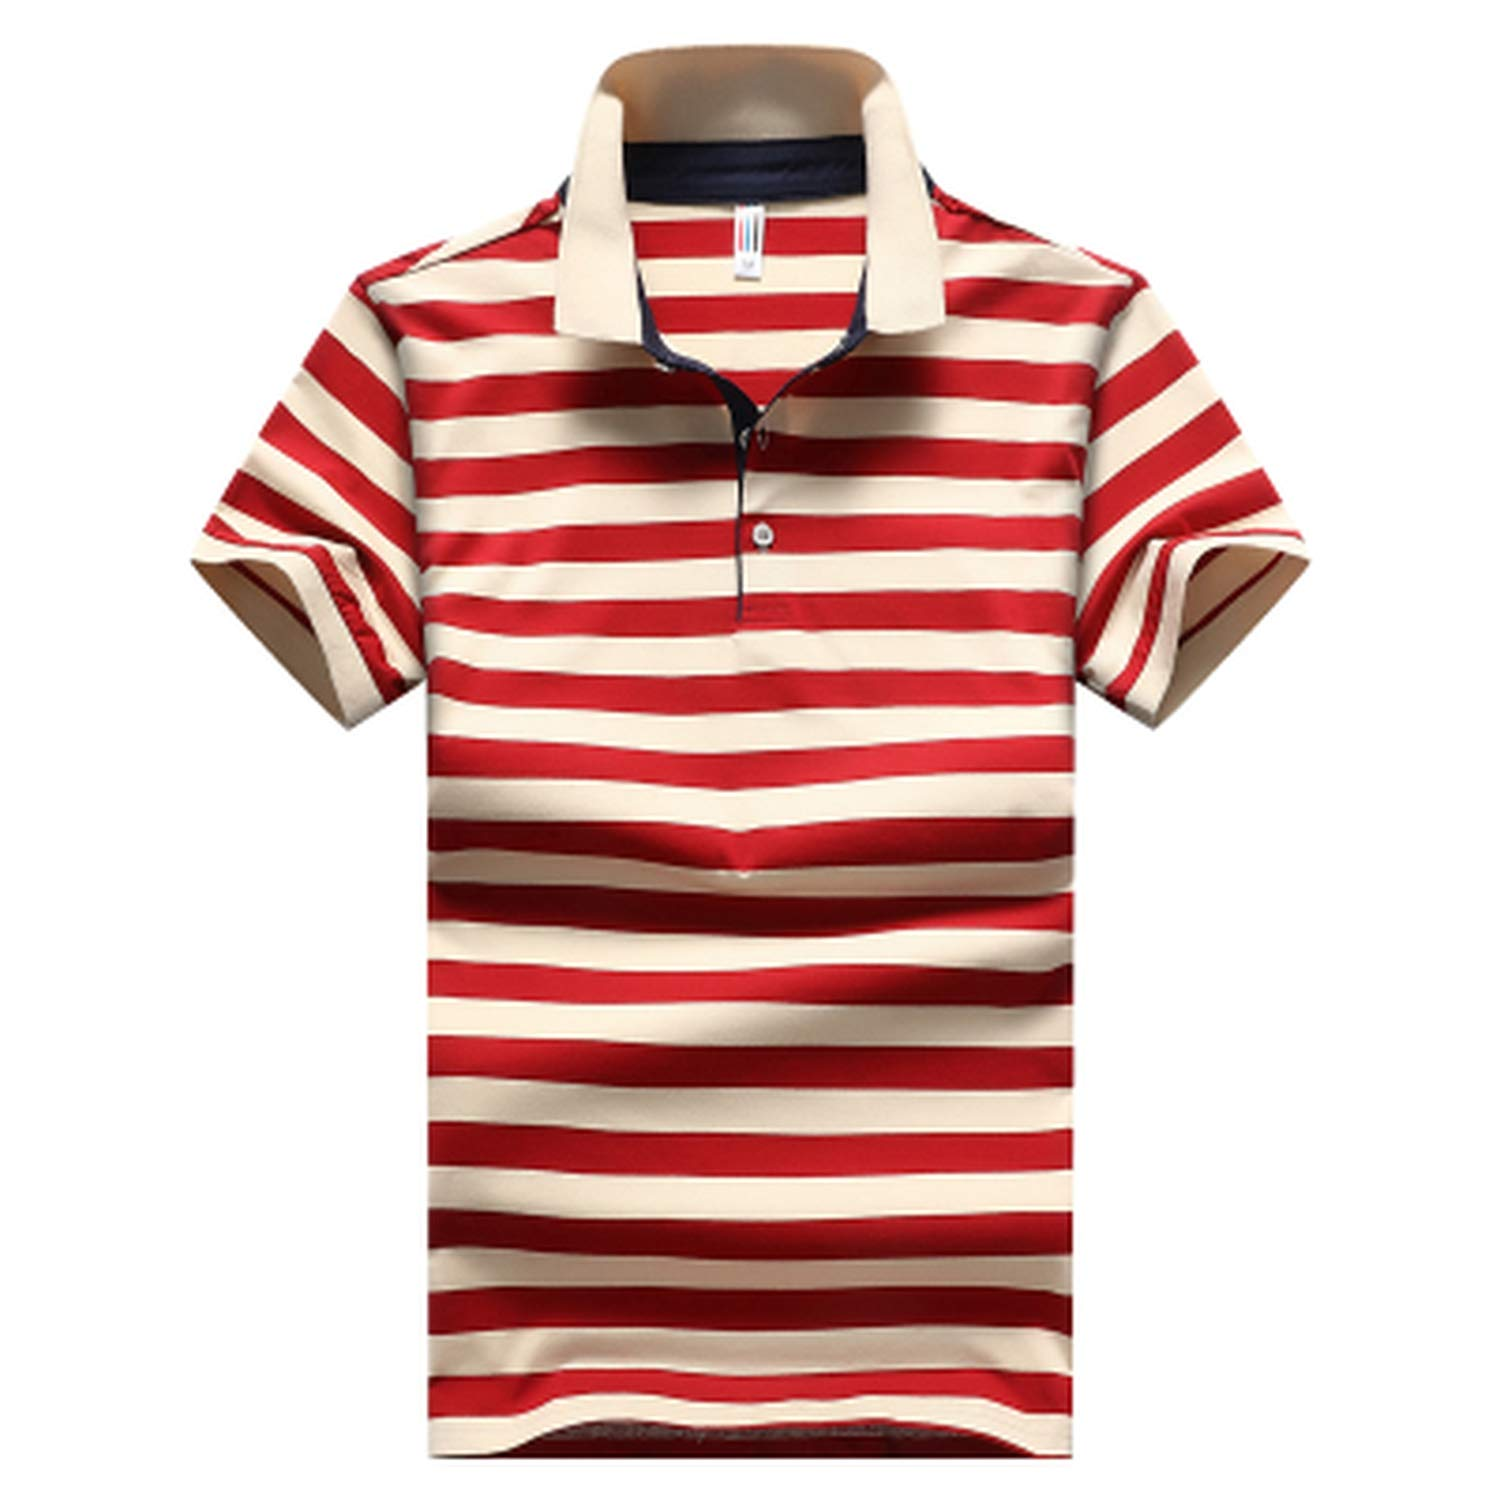 EspTmall New Men 95/% Cotton Fashion Striped Summer Short-Sleeve